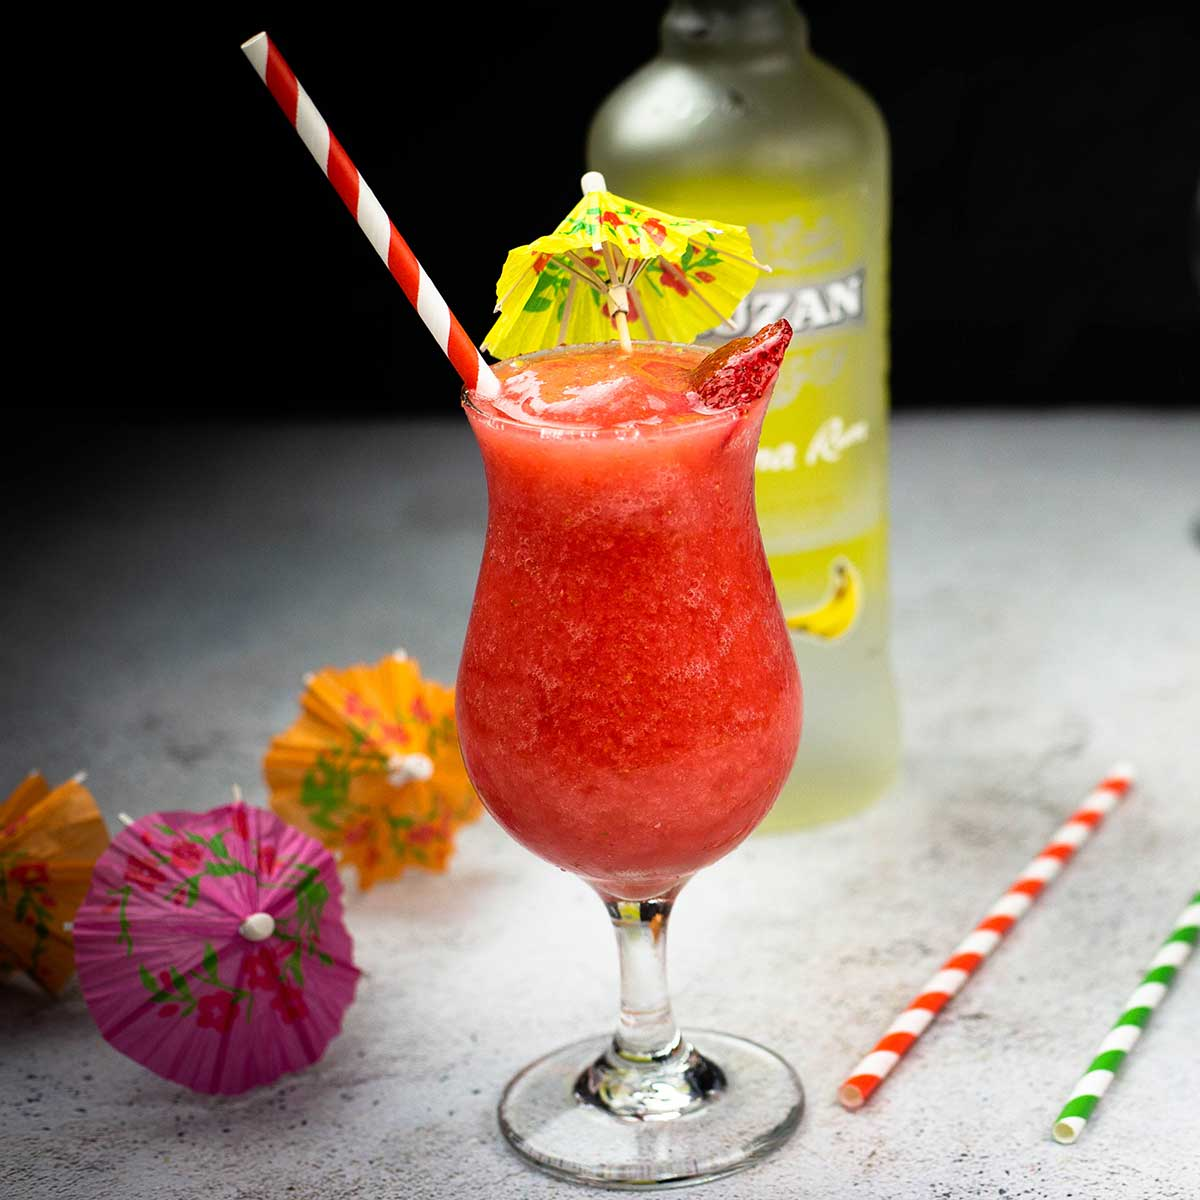 Frozen Strawberry Daiquiri in a hurricane glass with colored straws and drink umbrellas